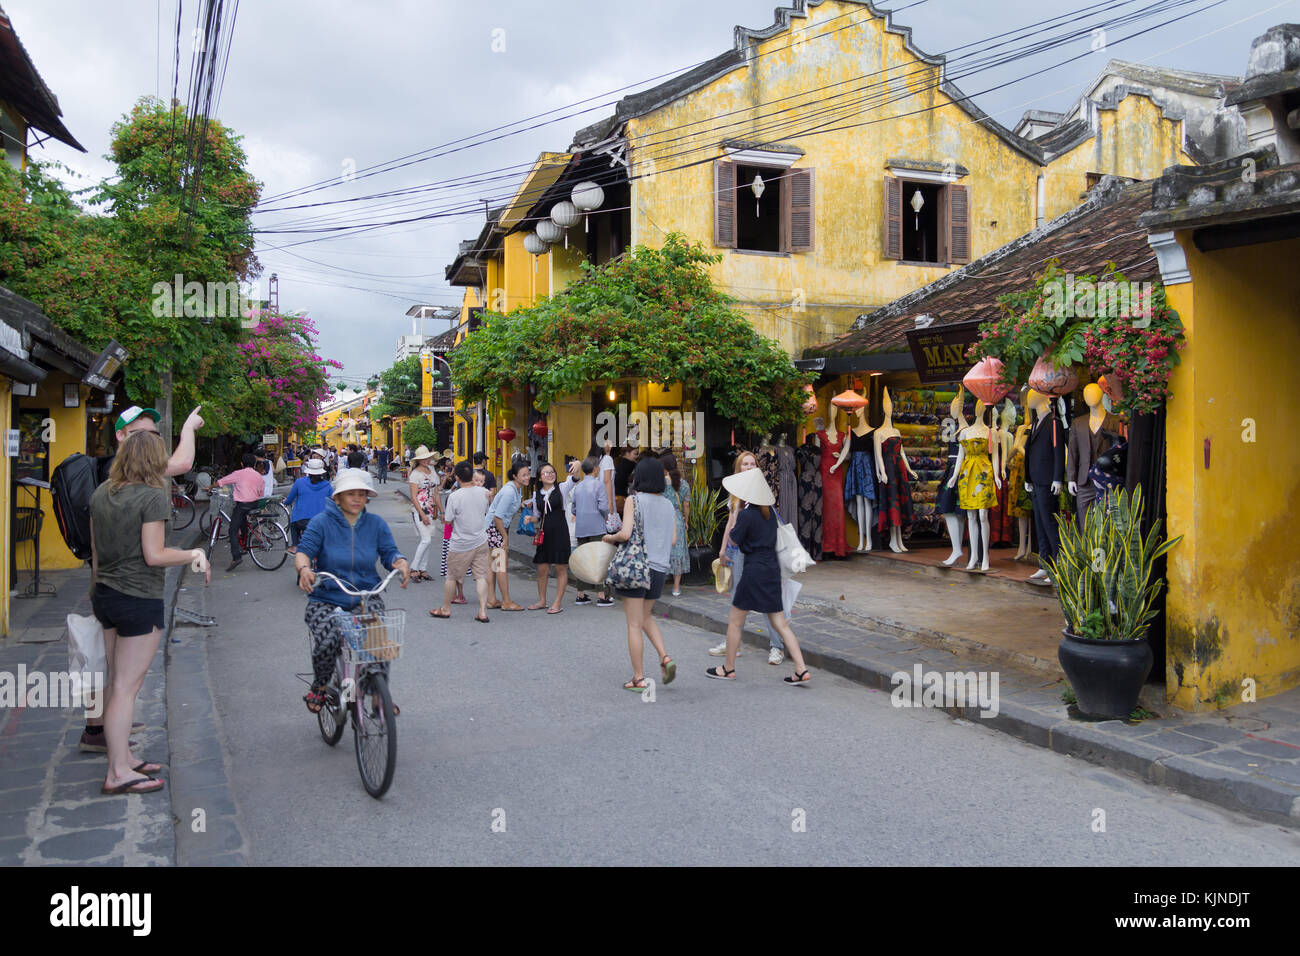 Hoi An, Vietnam - June 2017: busy shopping street with boutiques in Hoi An Vietnam - Stock Image